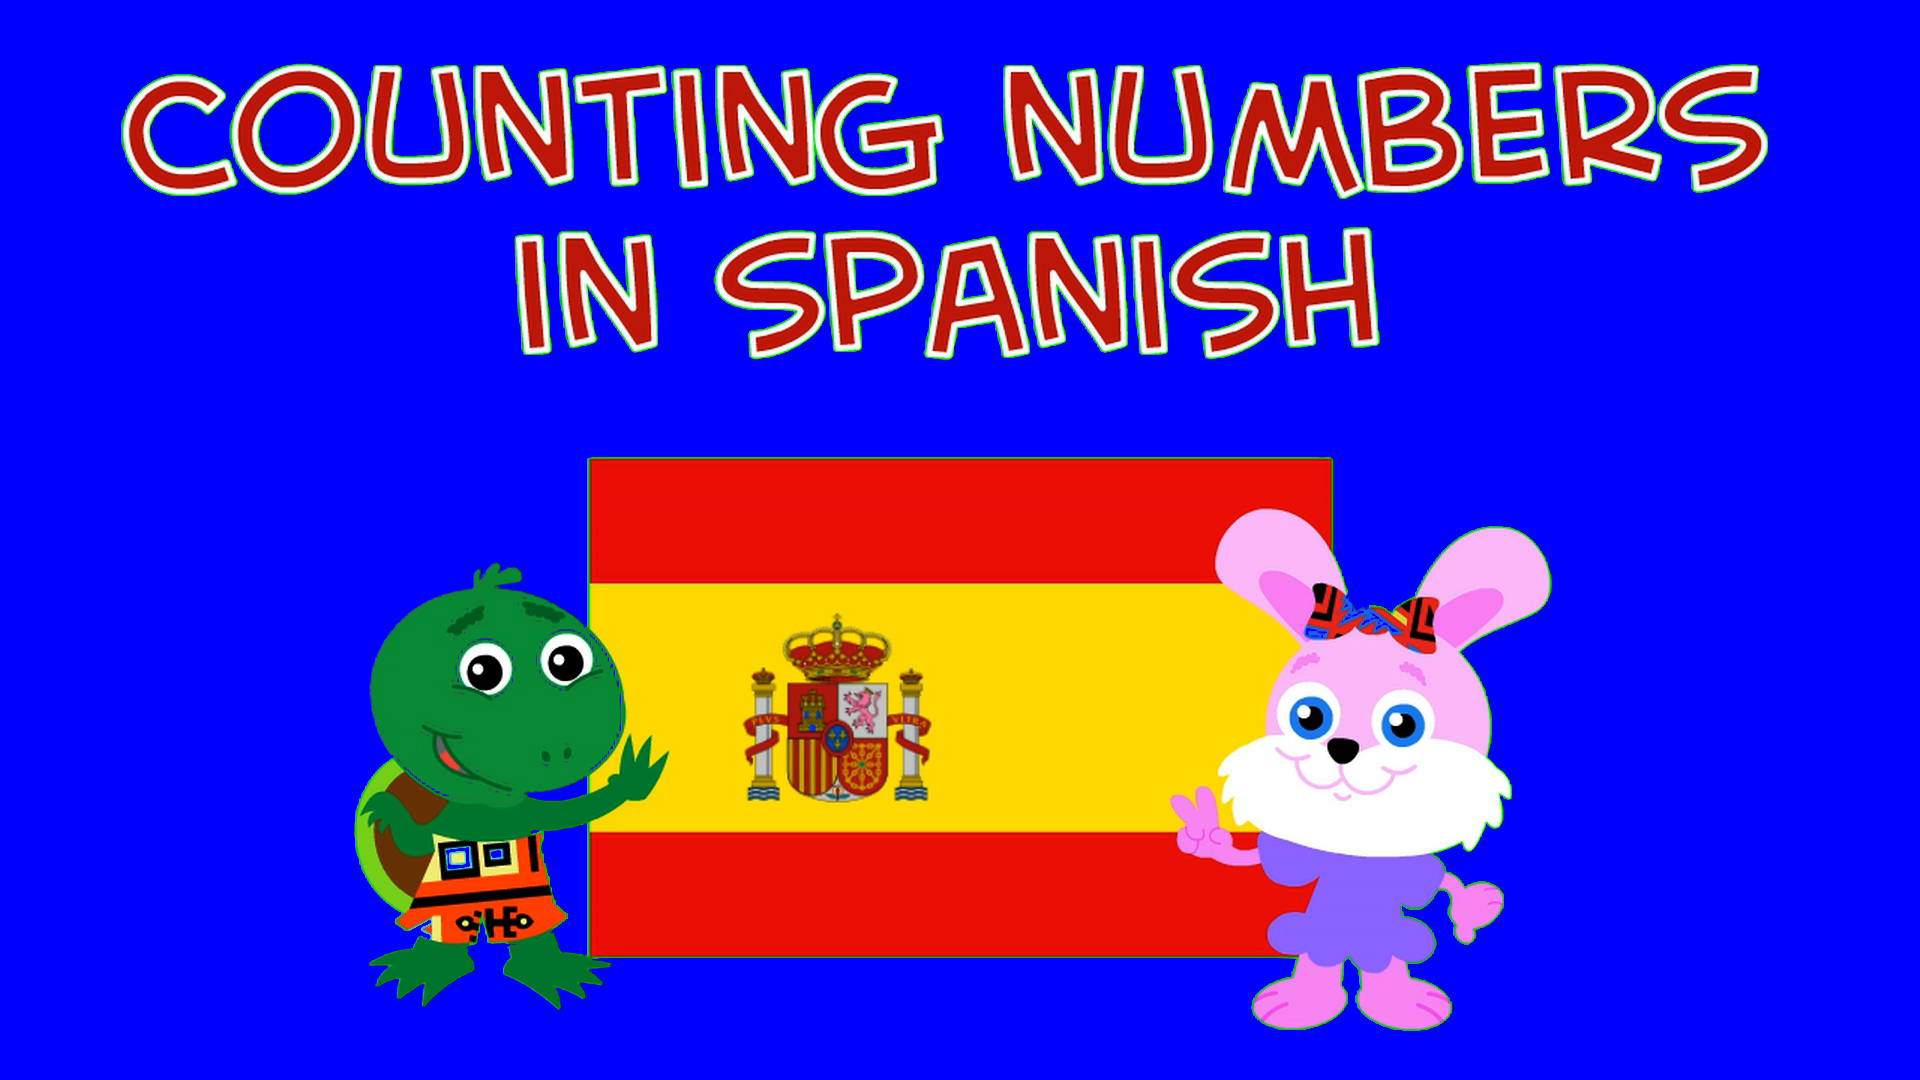 COUNTING NUMBERS IN SPANISH (Soundboard)